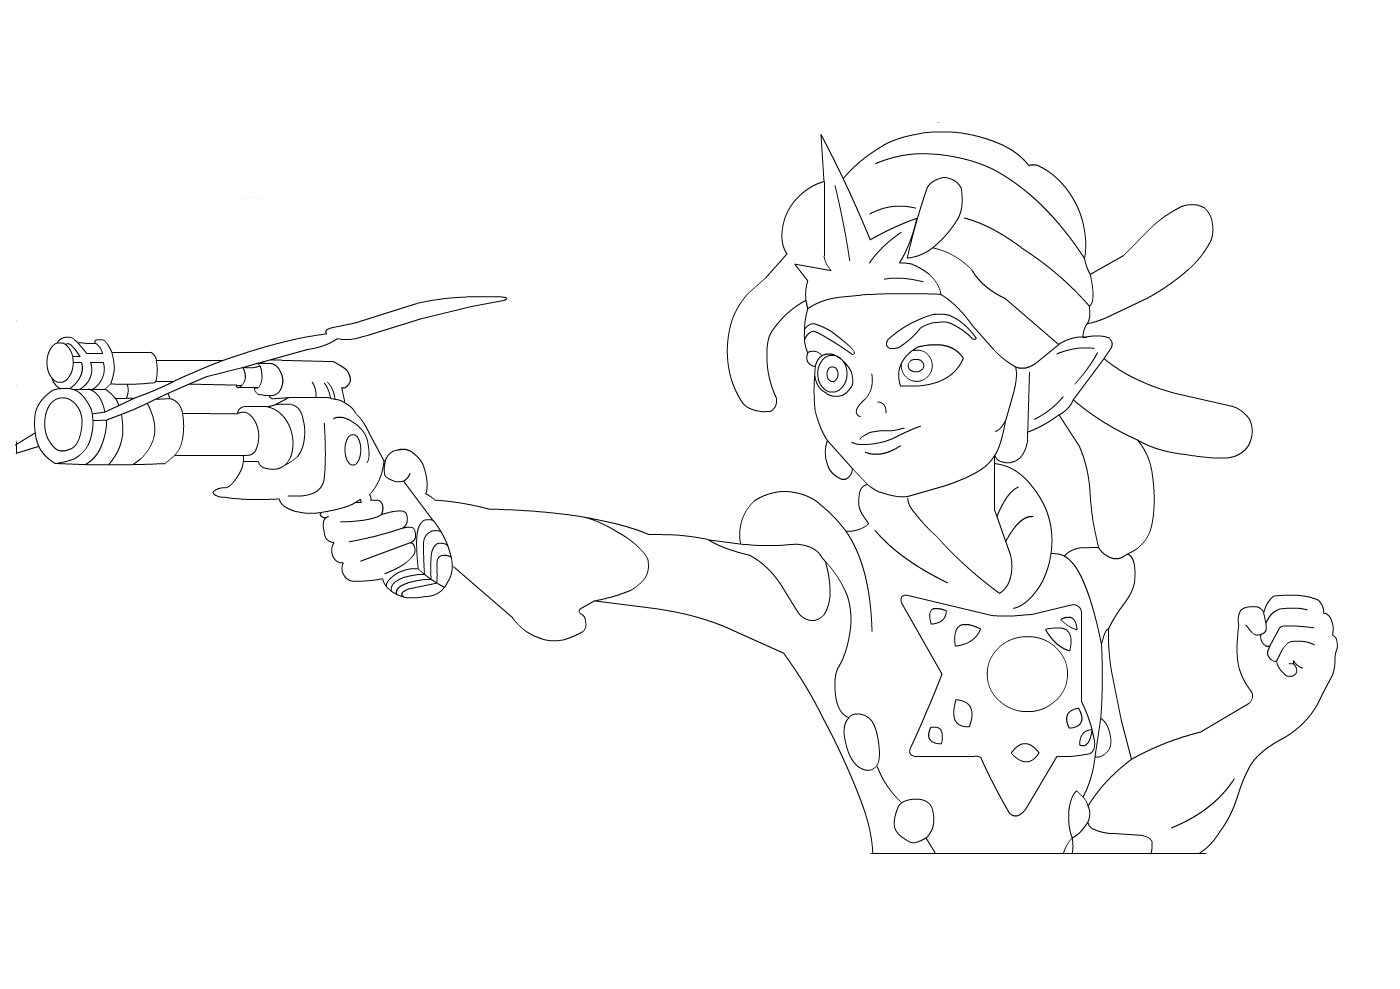 Zak Storm Coloring Pages To Download And Print For Free